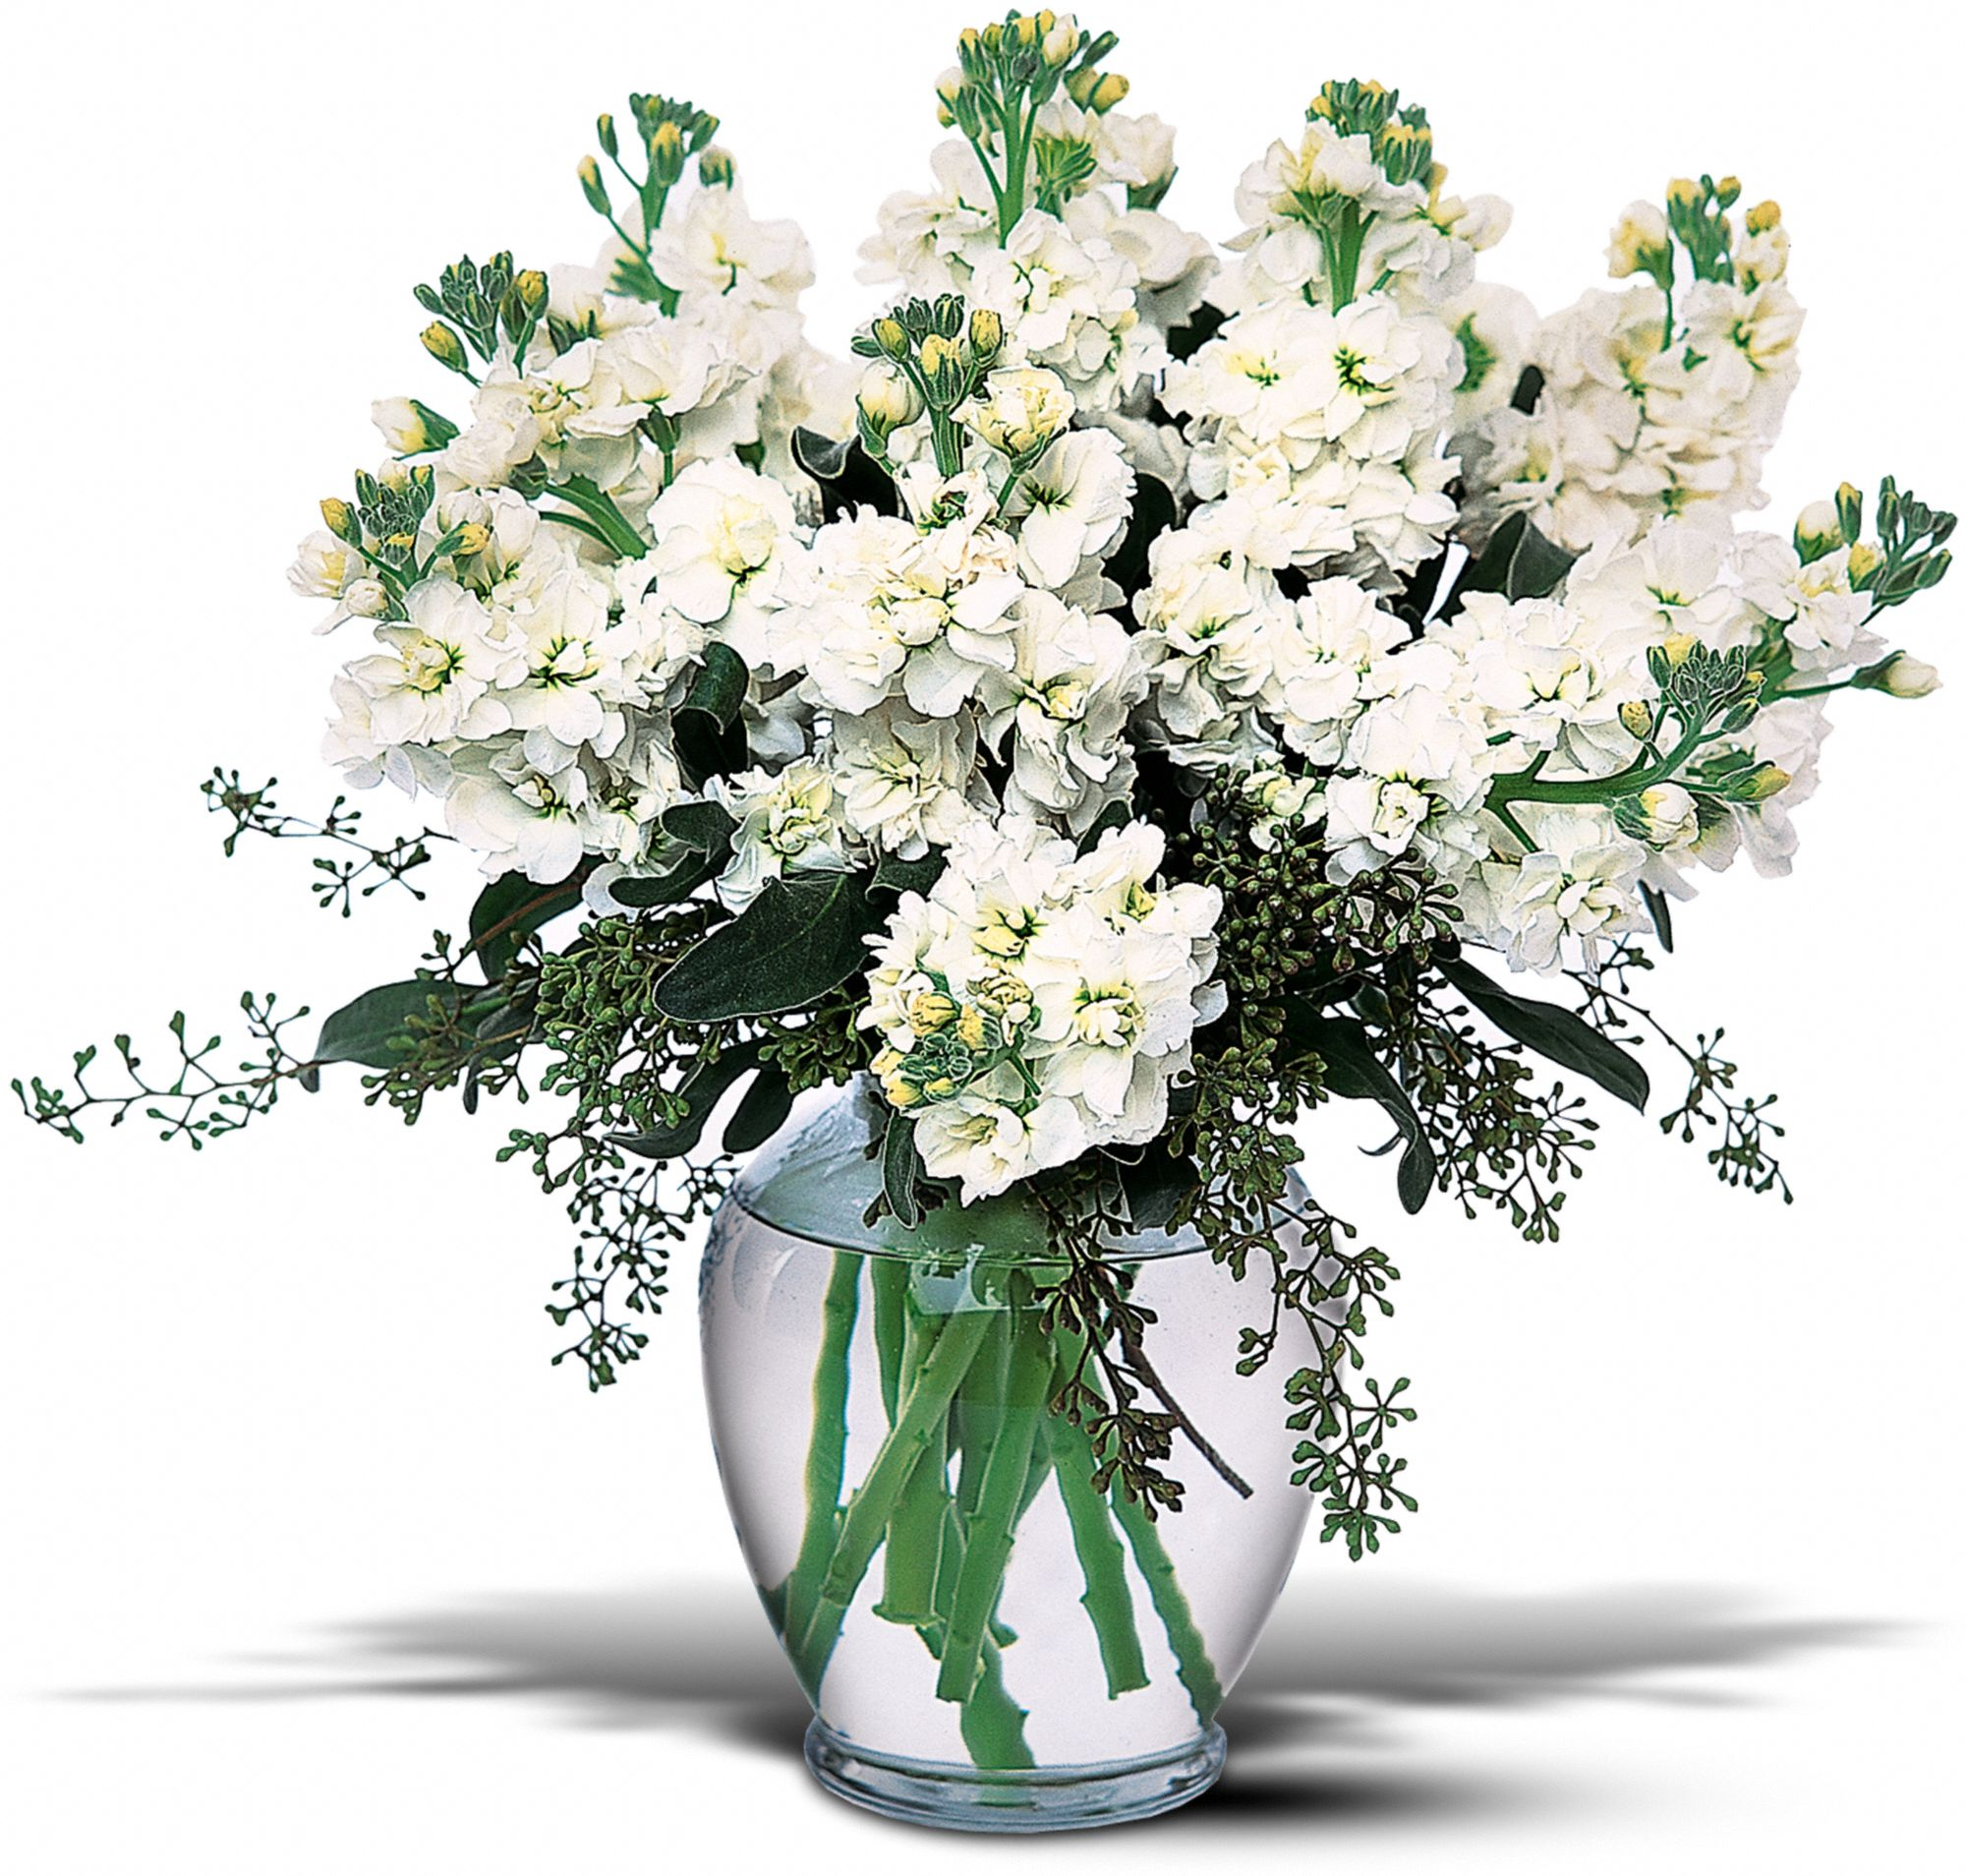 Stylish Stock Flowers, Stylish Stock Flower Bouquet - Teleflora.com